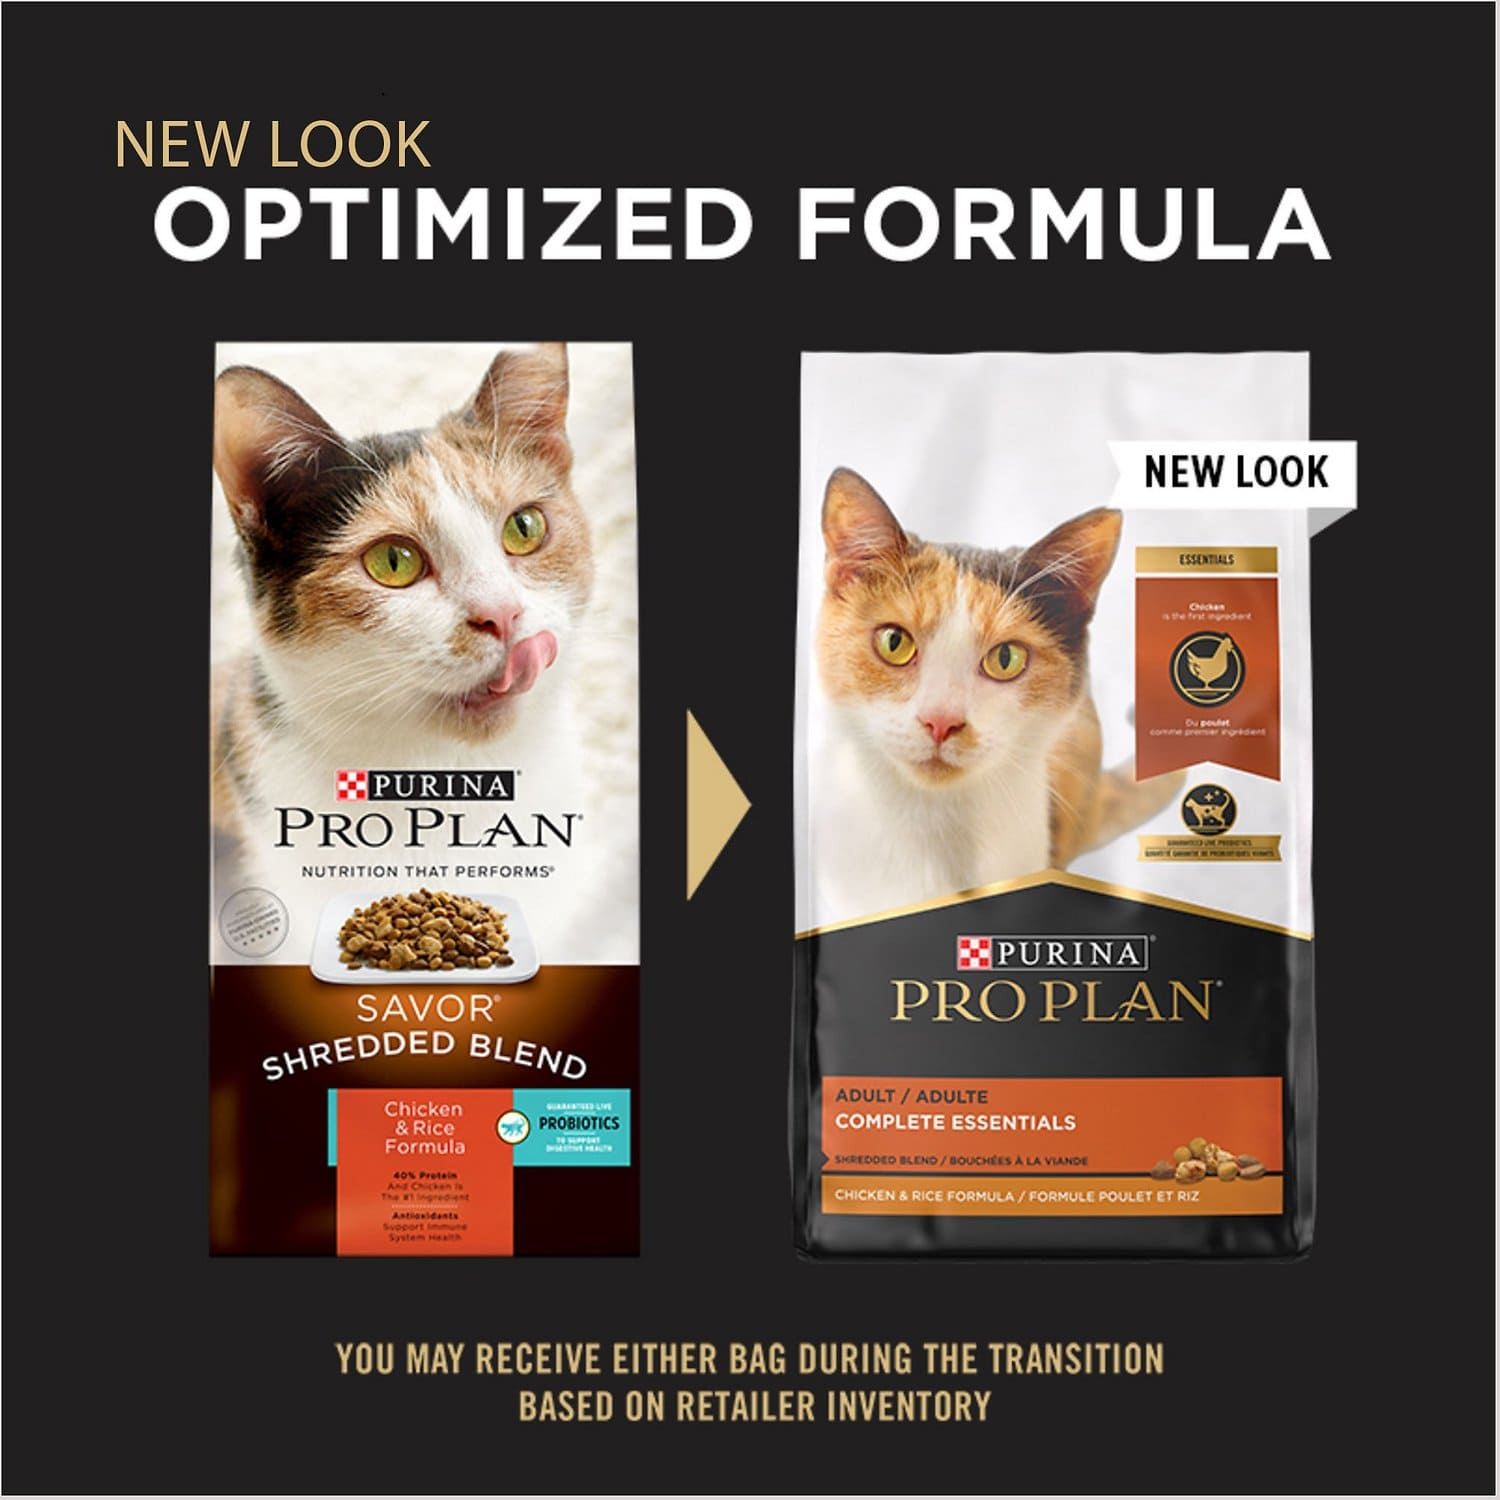 Purina Pro Plan Adult Complete Essentials Shredded Blend Formula for Cats 3.2 lbs Chicken & Rice 2